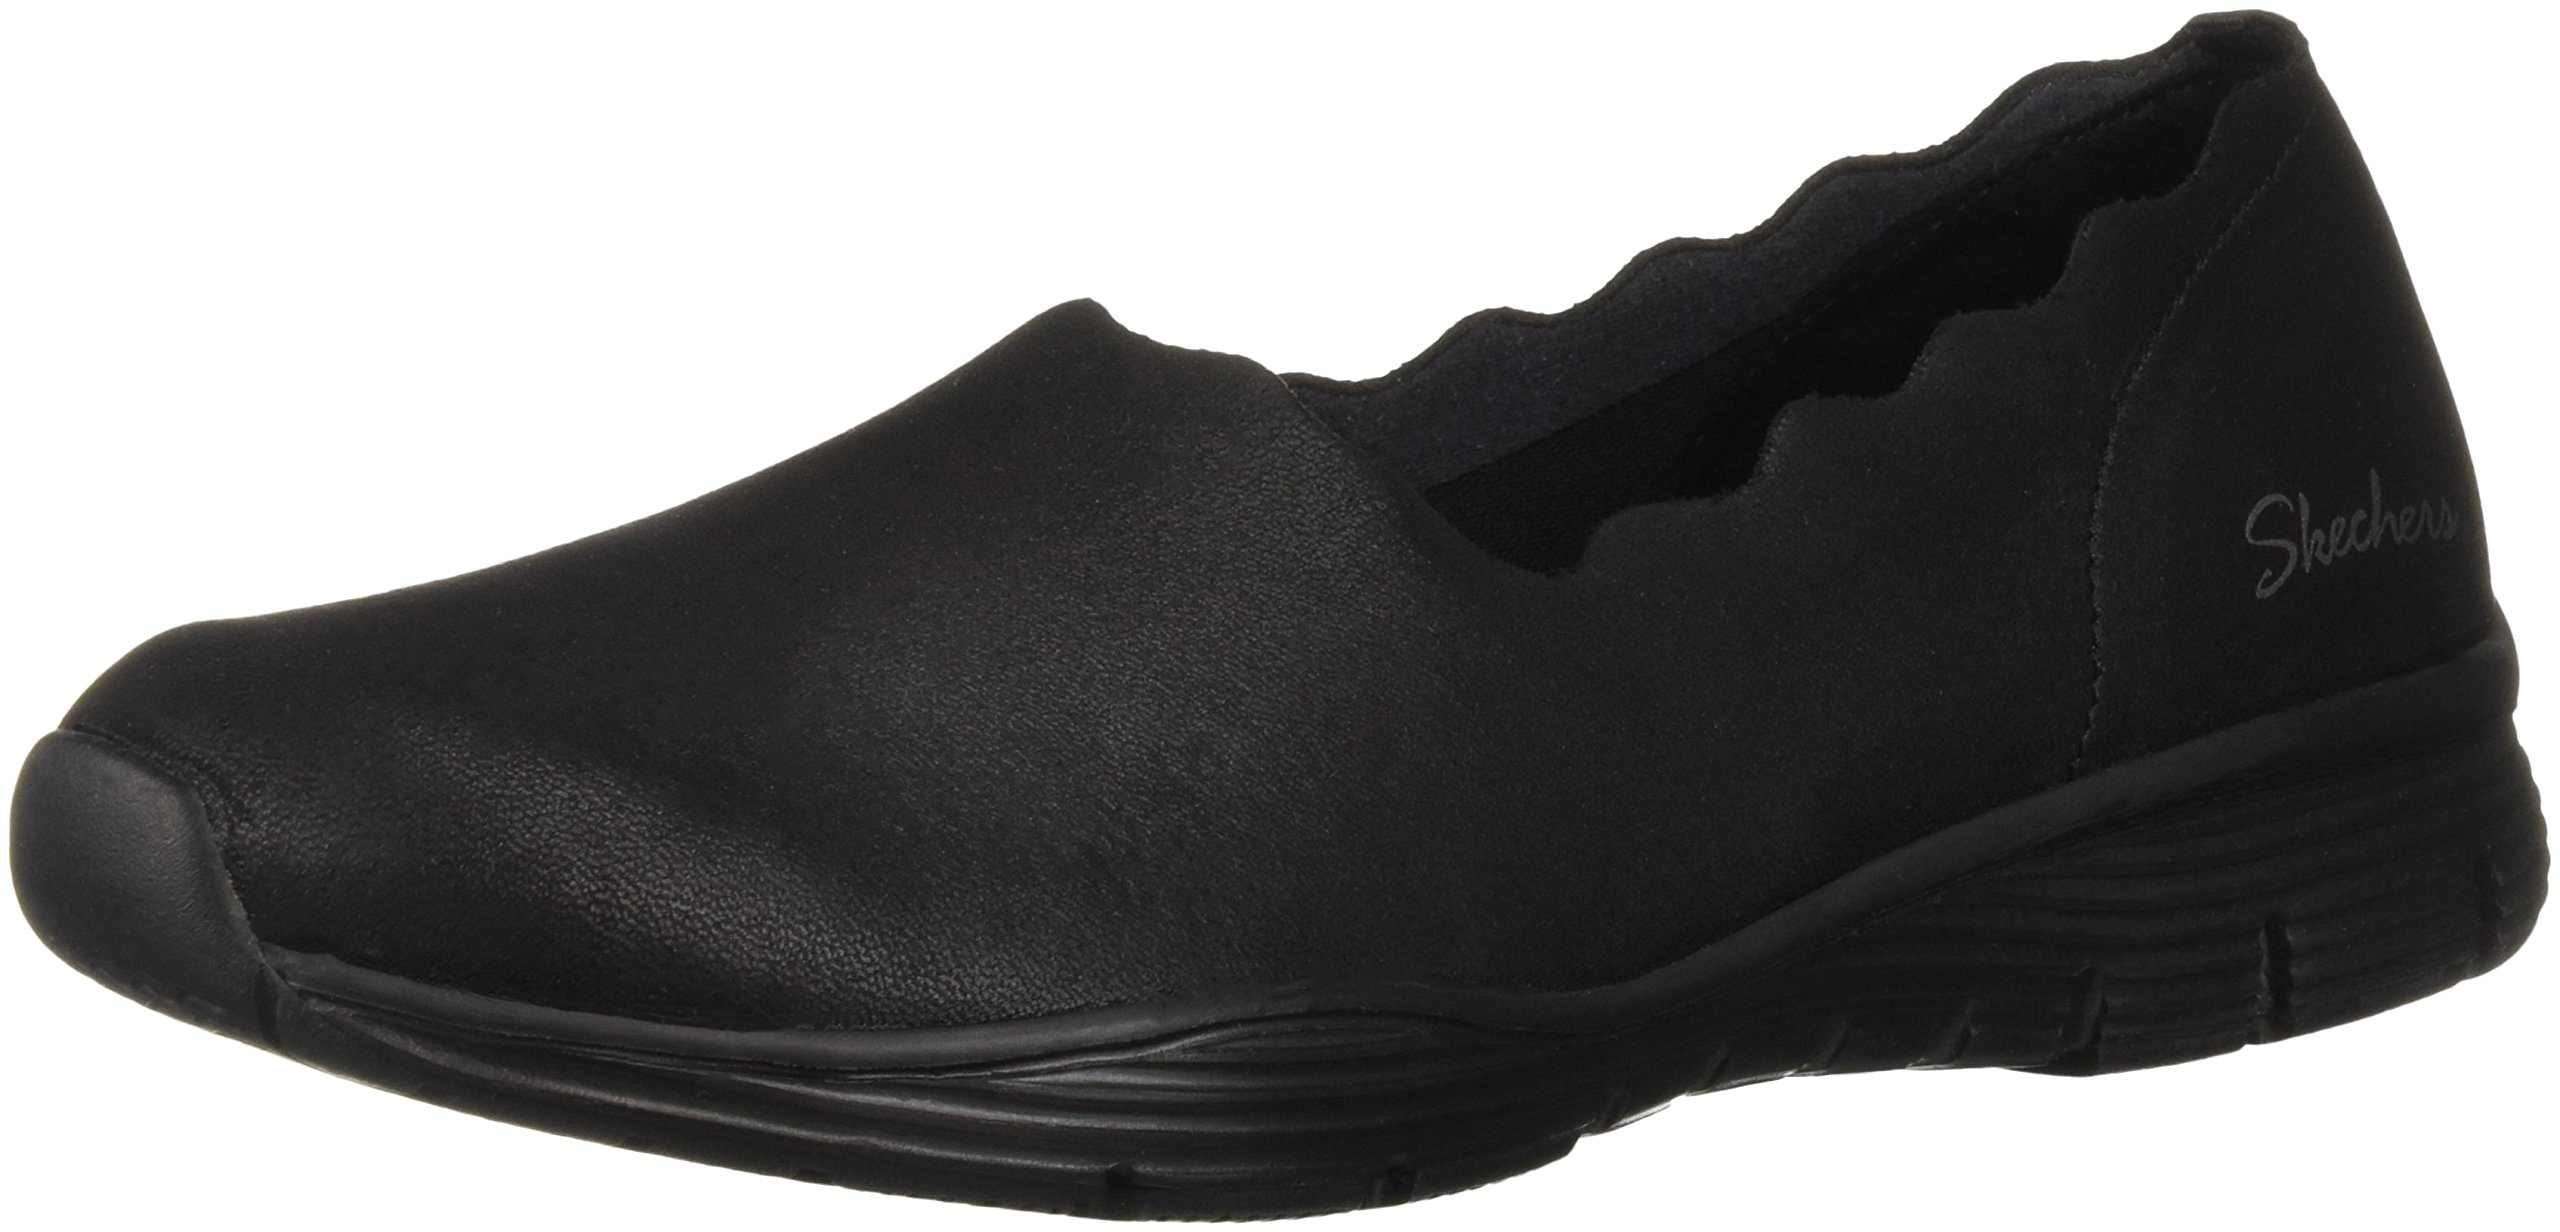 Skechers Women's Seager - Triple Ripple - Scallop Collar Slip On Loafer, Black, 7 M US